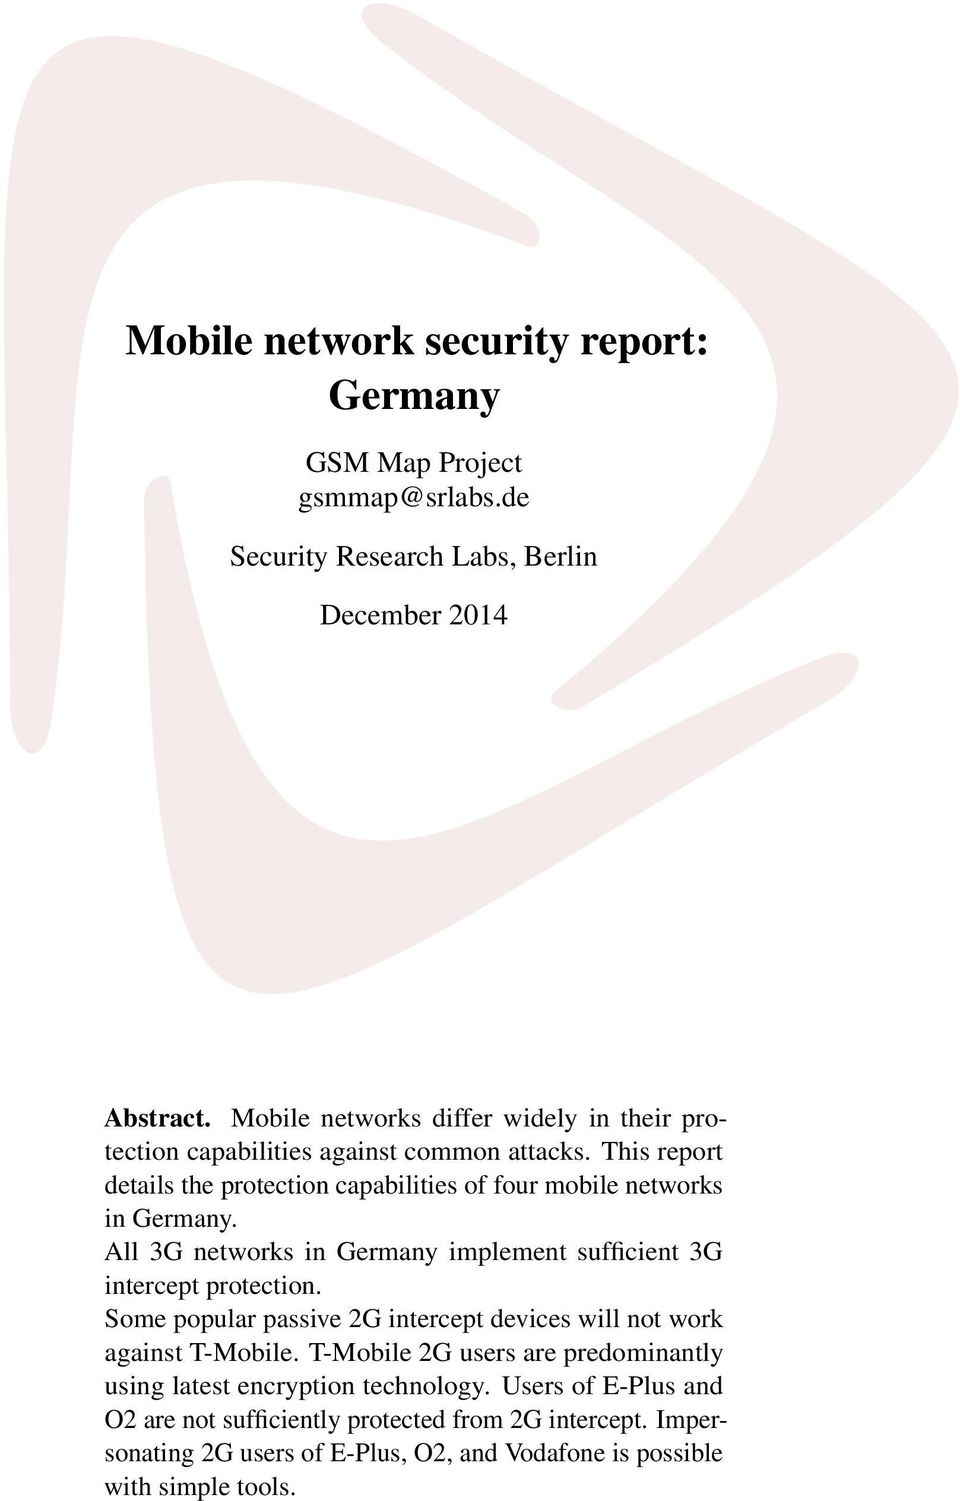 This report details the protection capabilities of four mobile networks in Germany. All 3G networks in Germany implement sufficient 3G intercept protection.